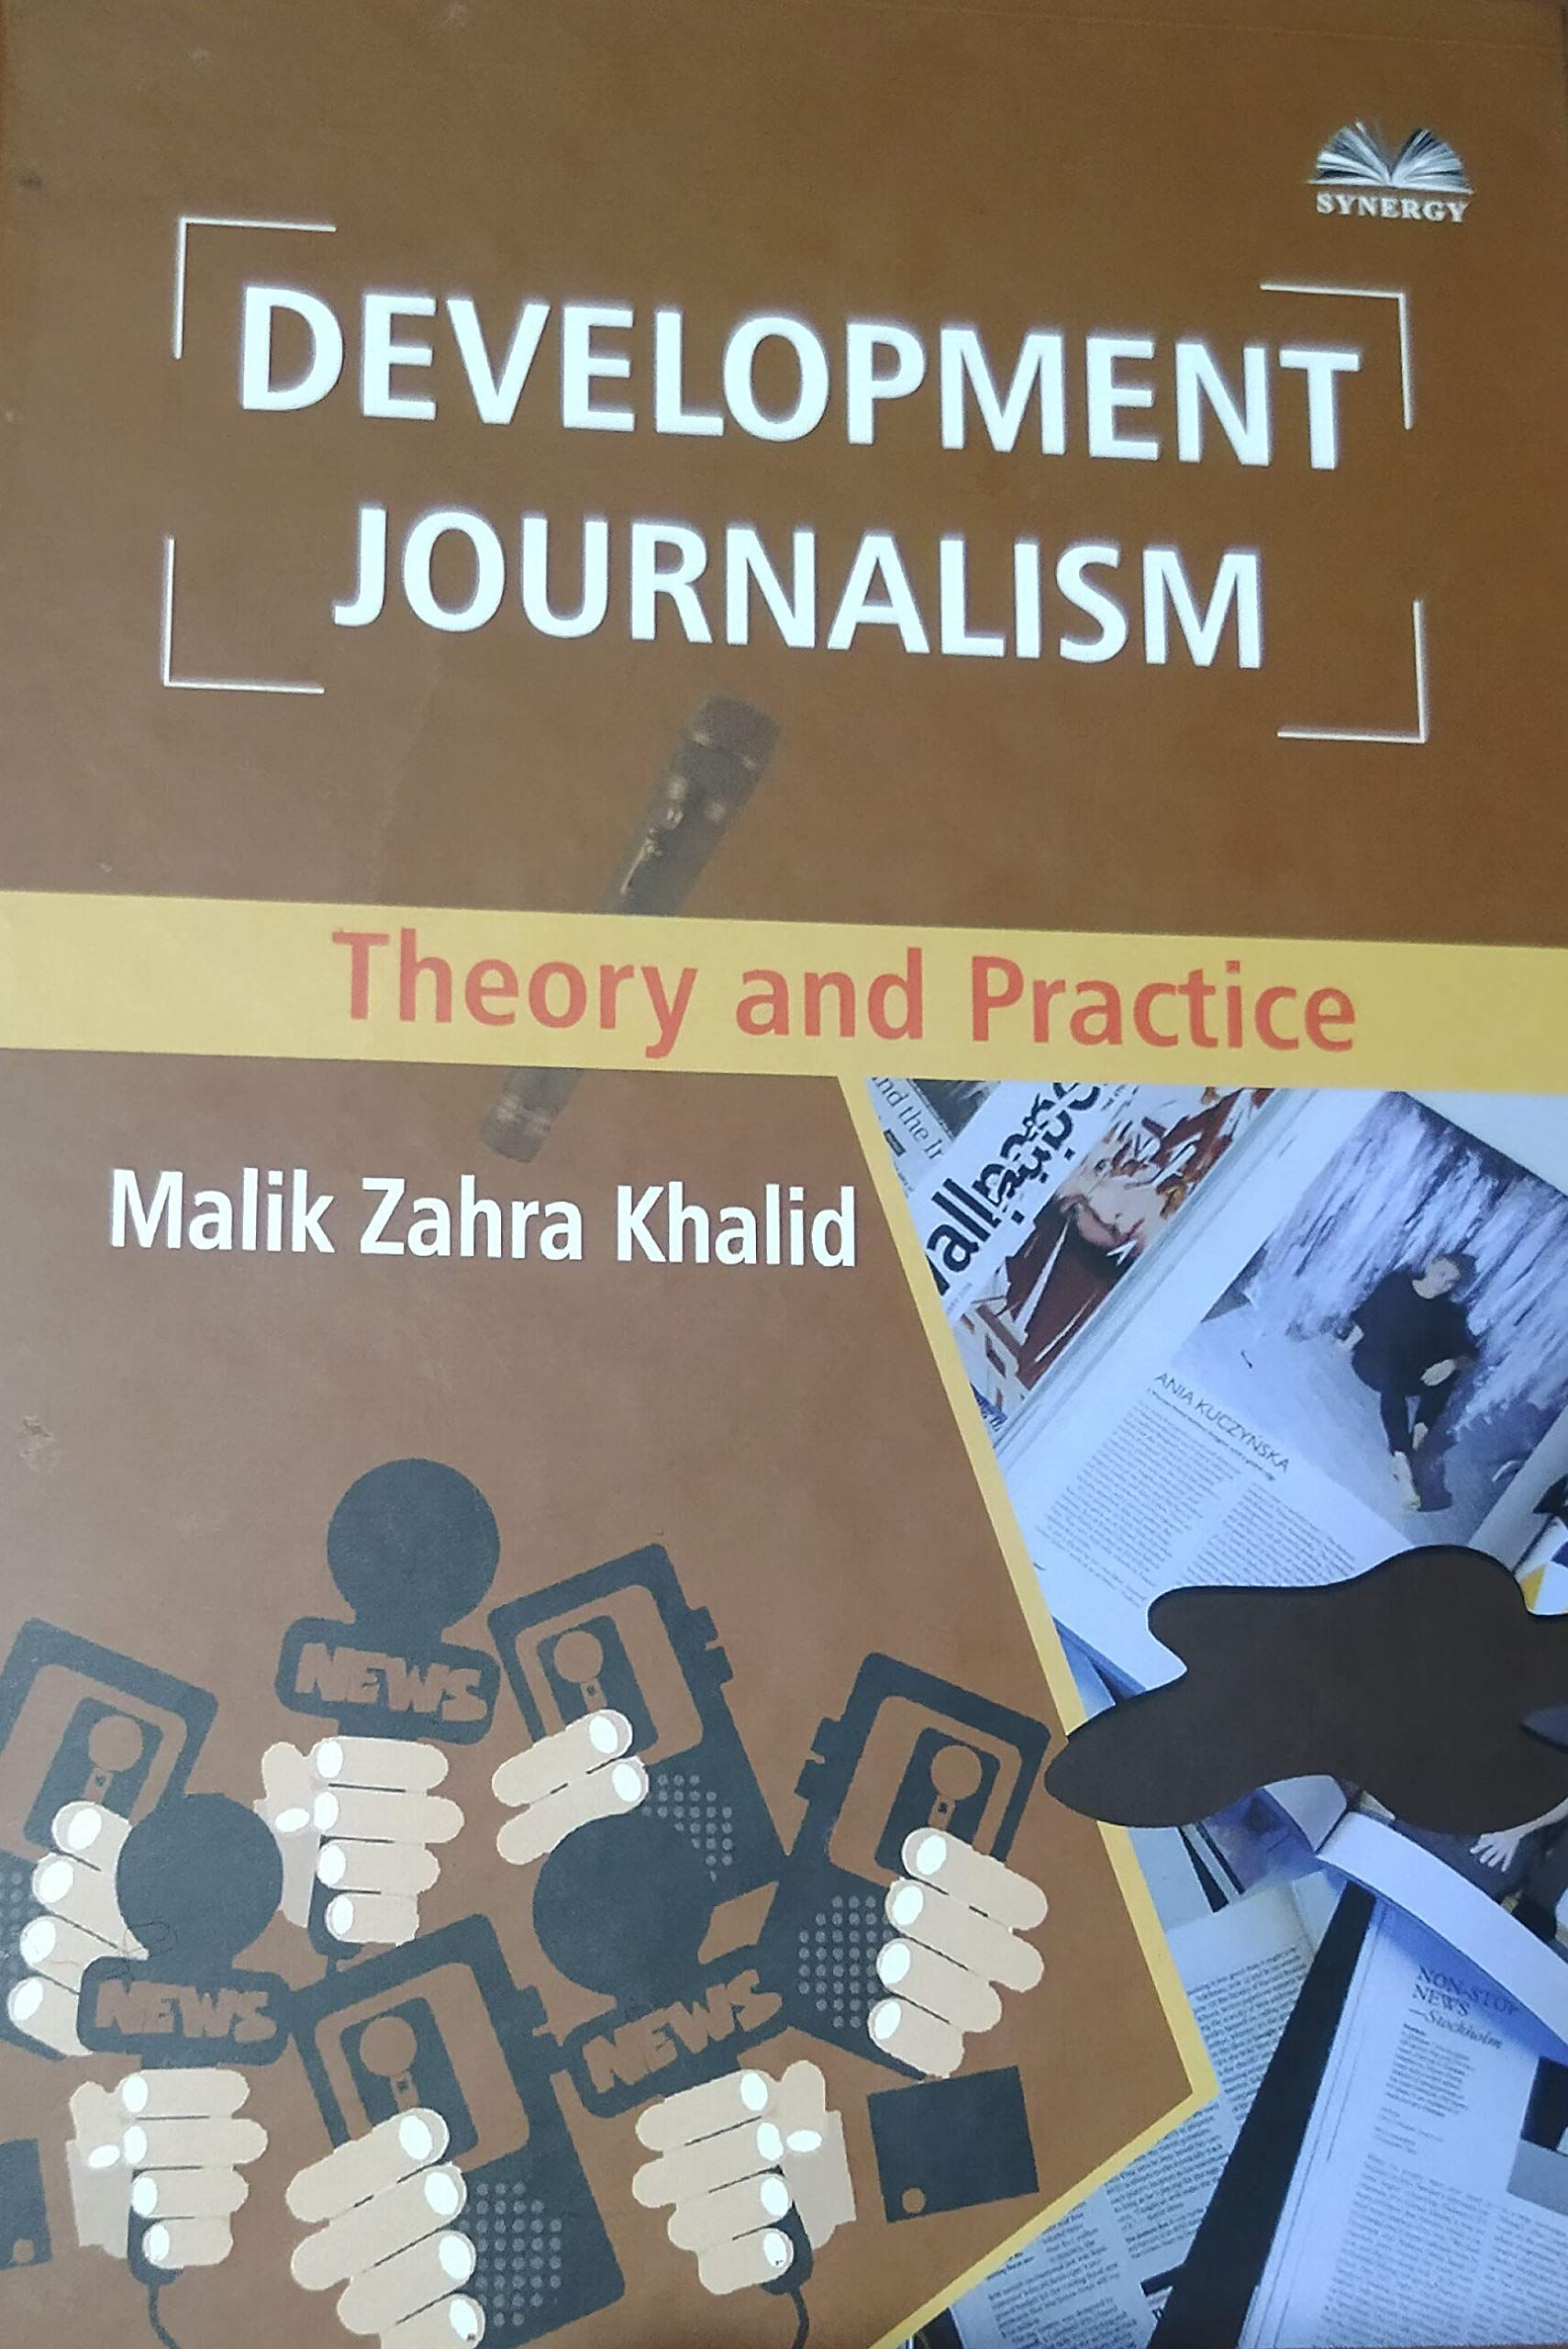 Development Journalism: Theory and Practice